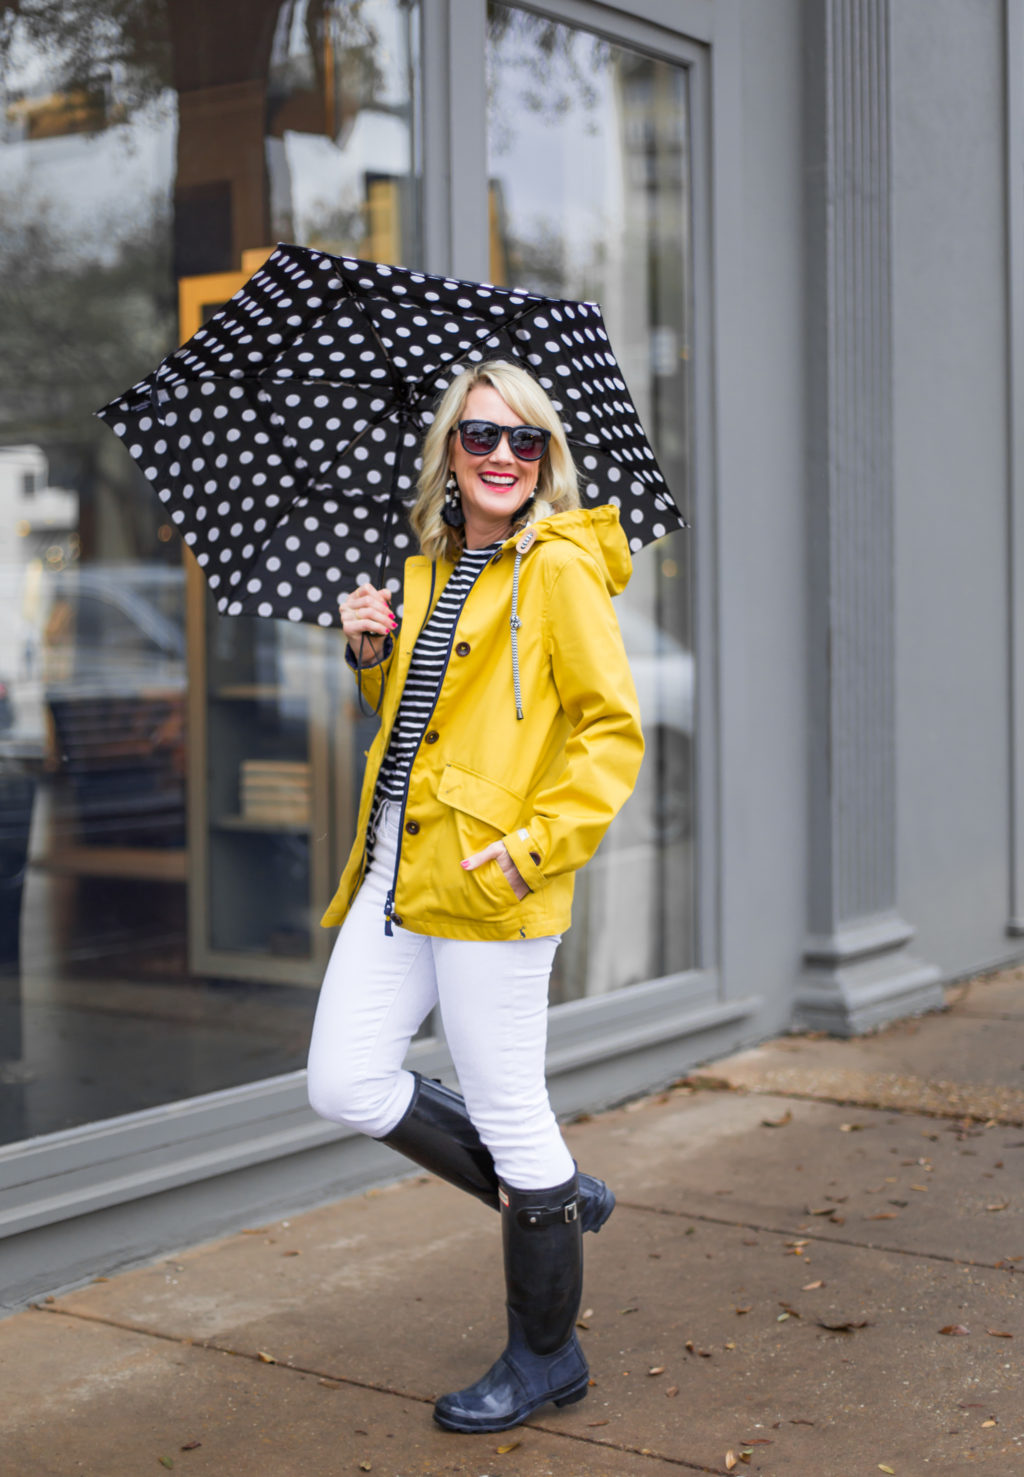 hunter boots white jeans outfit with yellow rain jacket polka dot umbrella